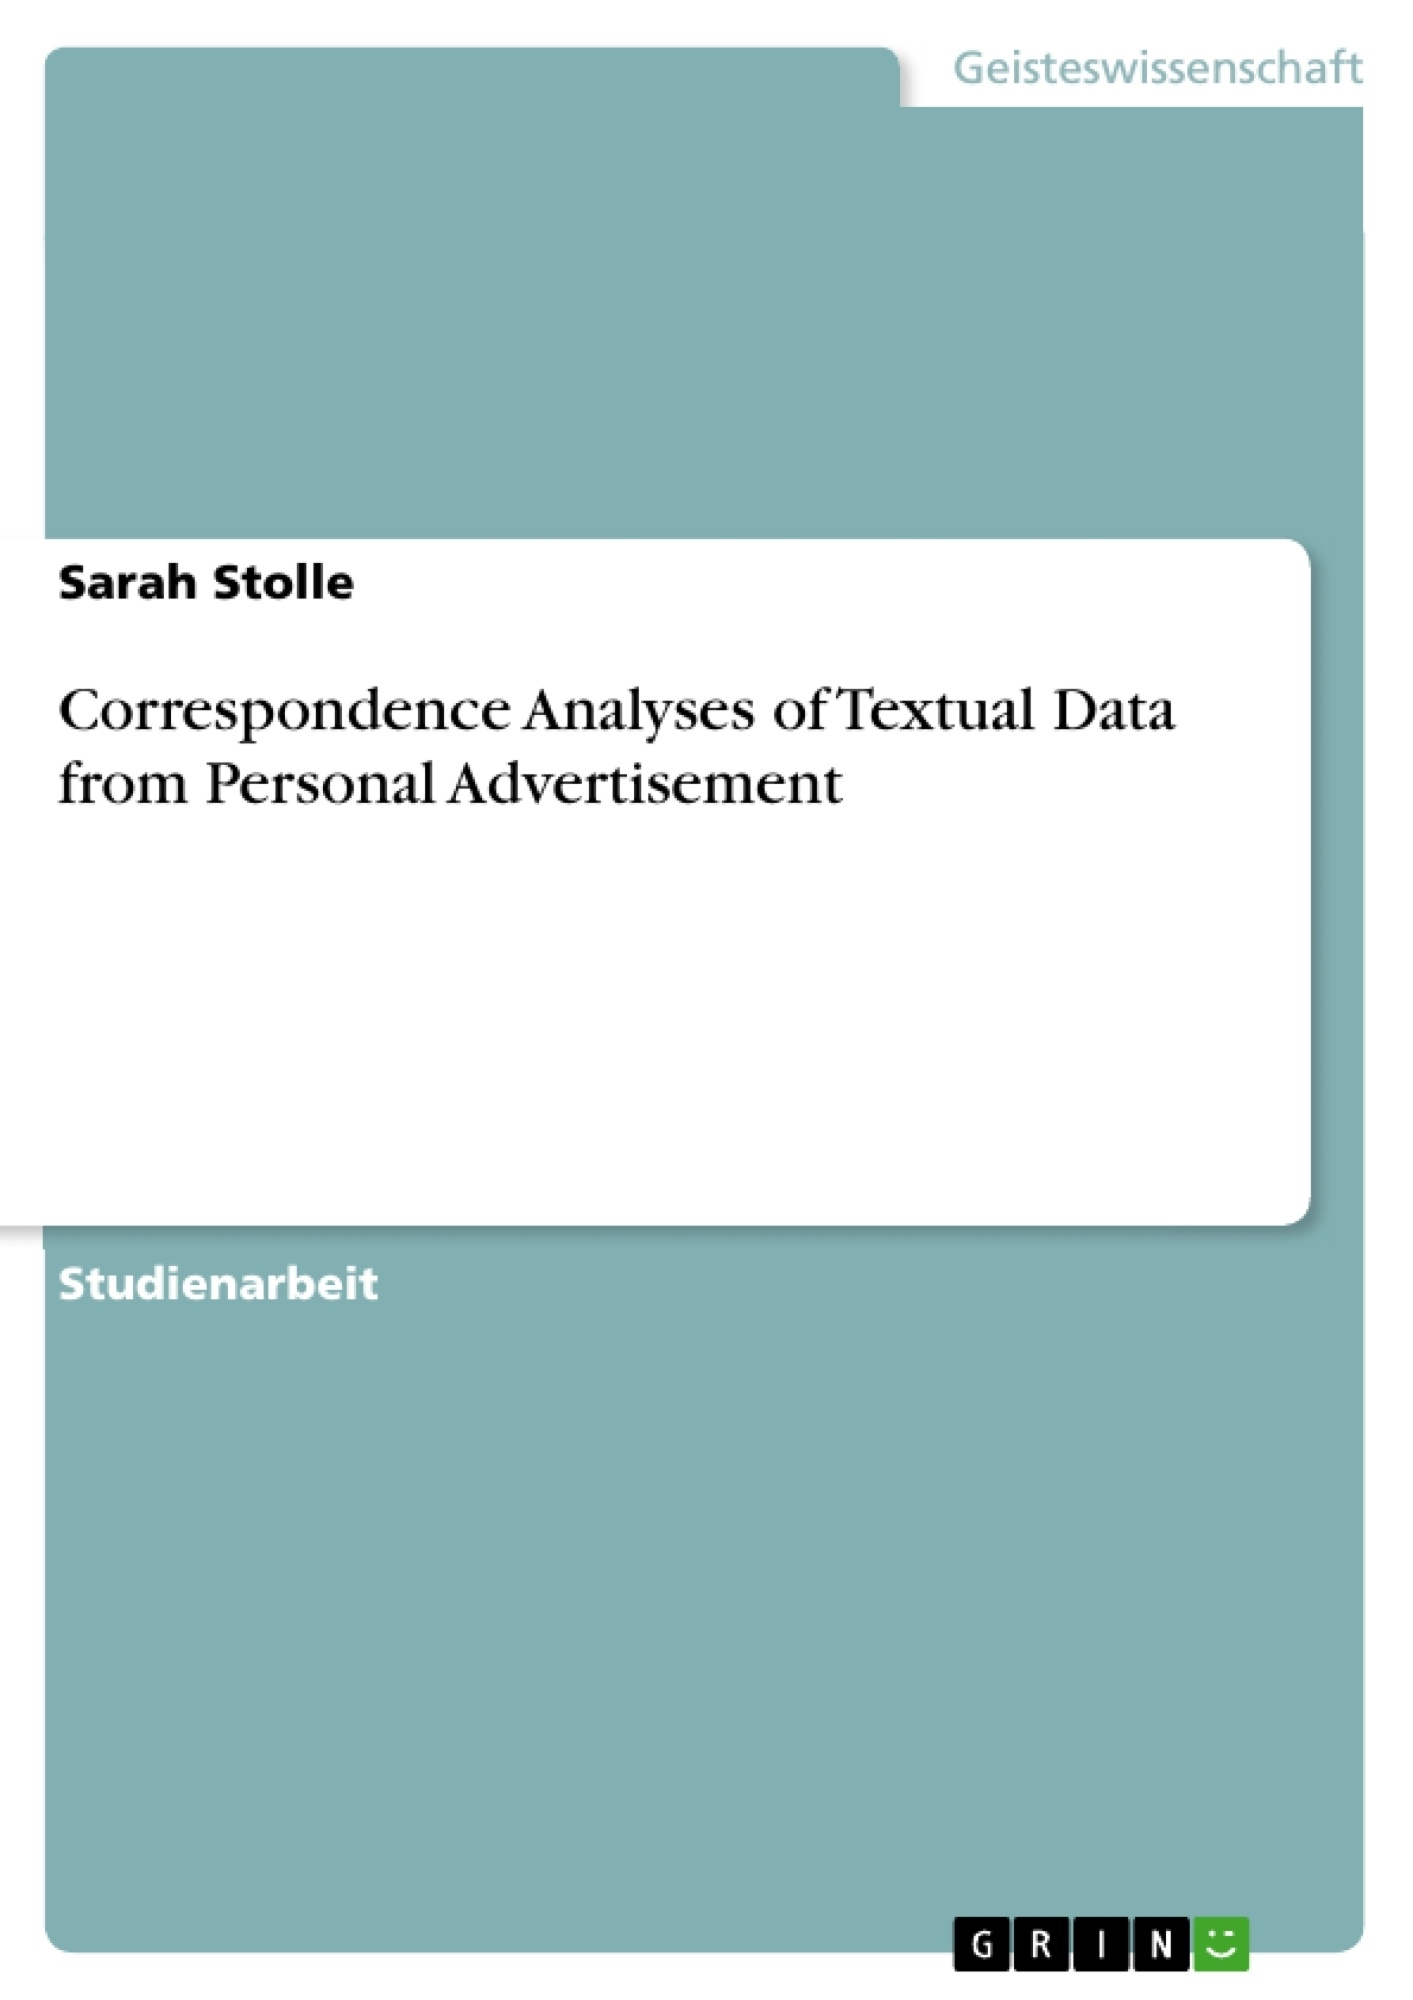 Titel: Correspondence Analyses of Textual Data from Personal Advertisement